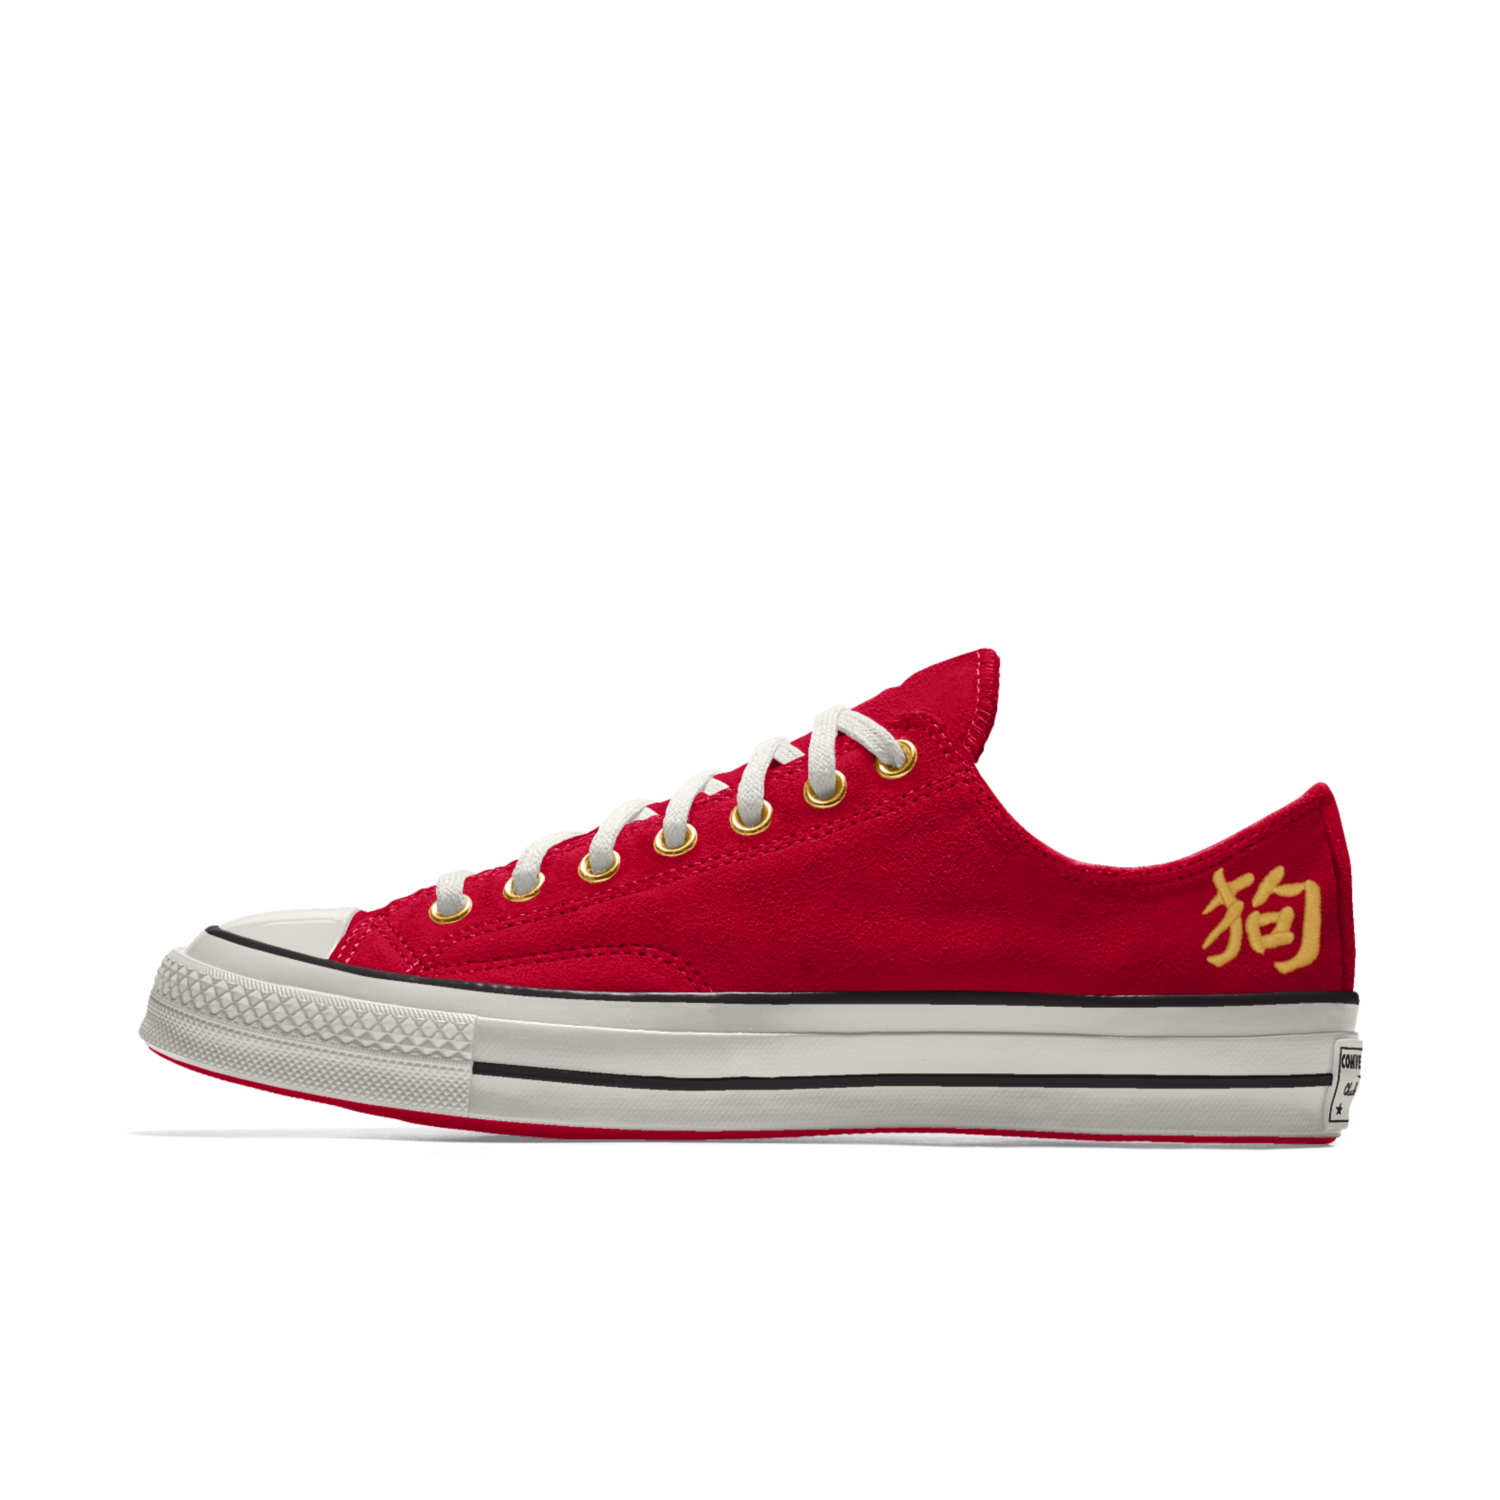 f7f0a200114 Converse Custom Chuck 70 Chinese New Year Low Top Shoe. Nike.com ...